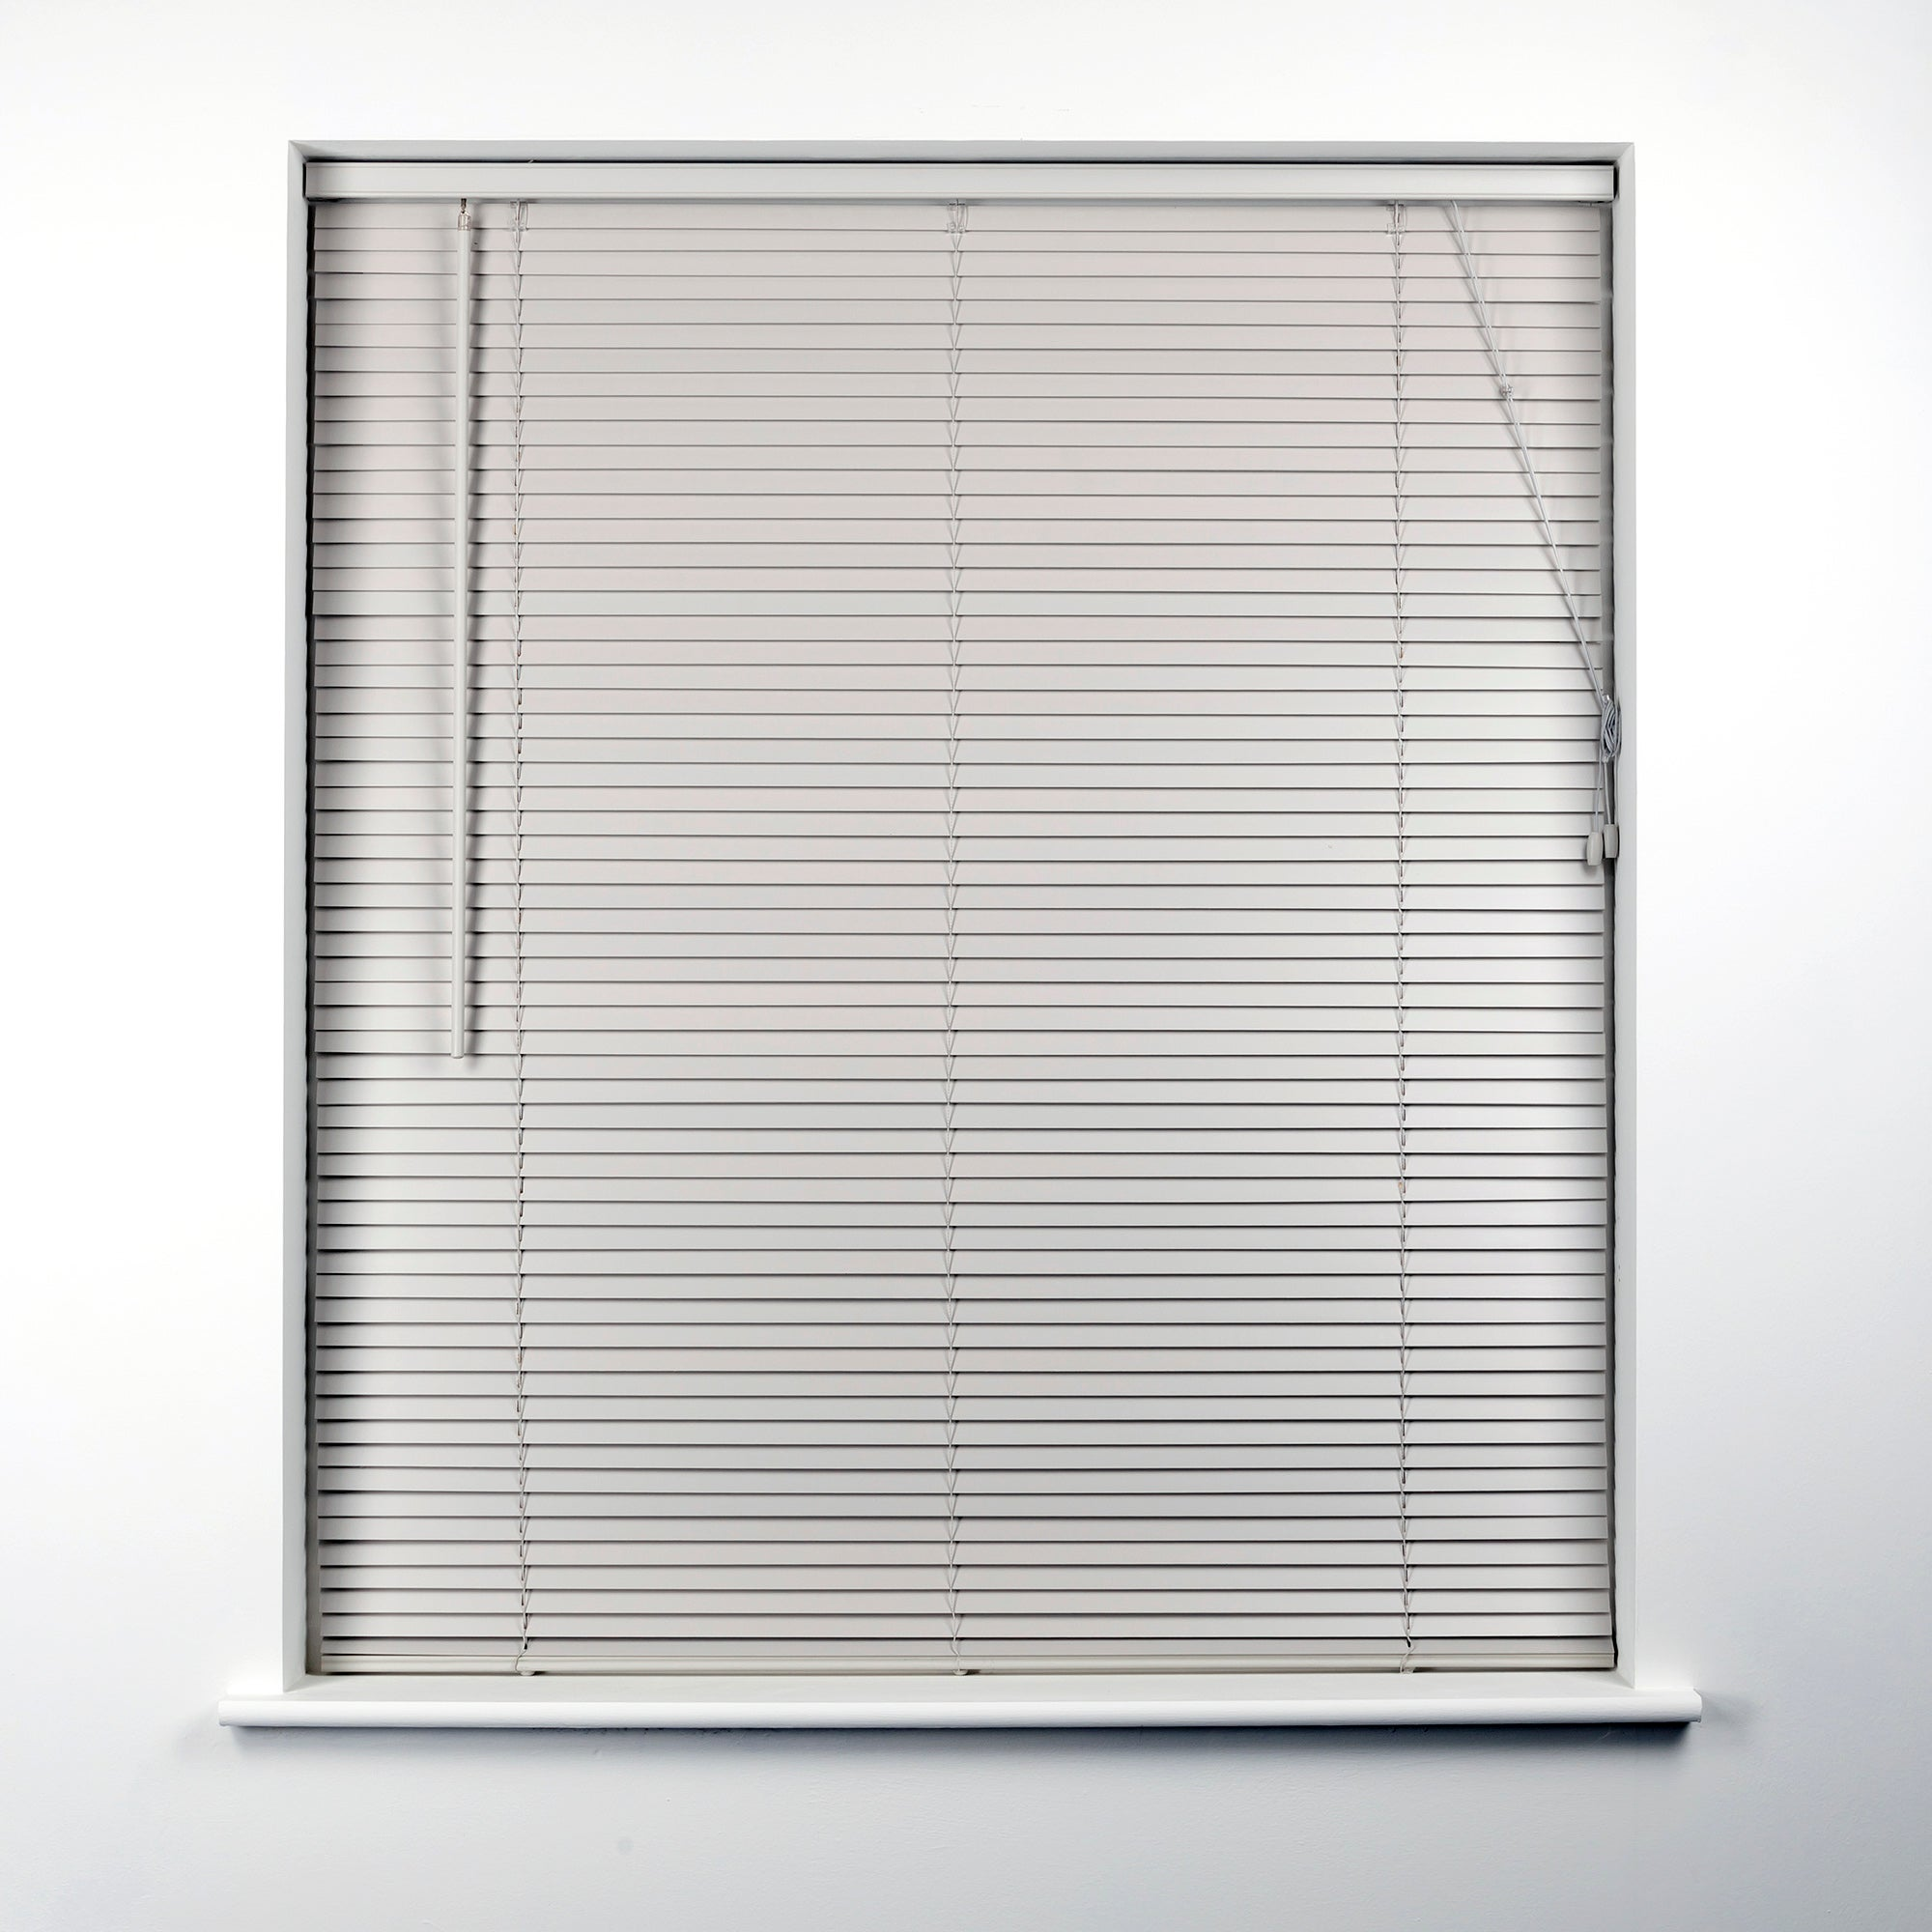 Dove Grey 25mm Hardwood Venetian Blind